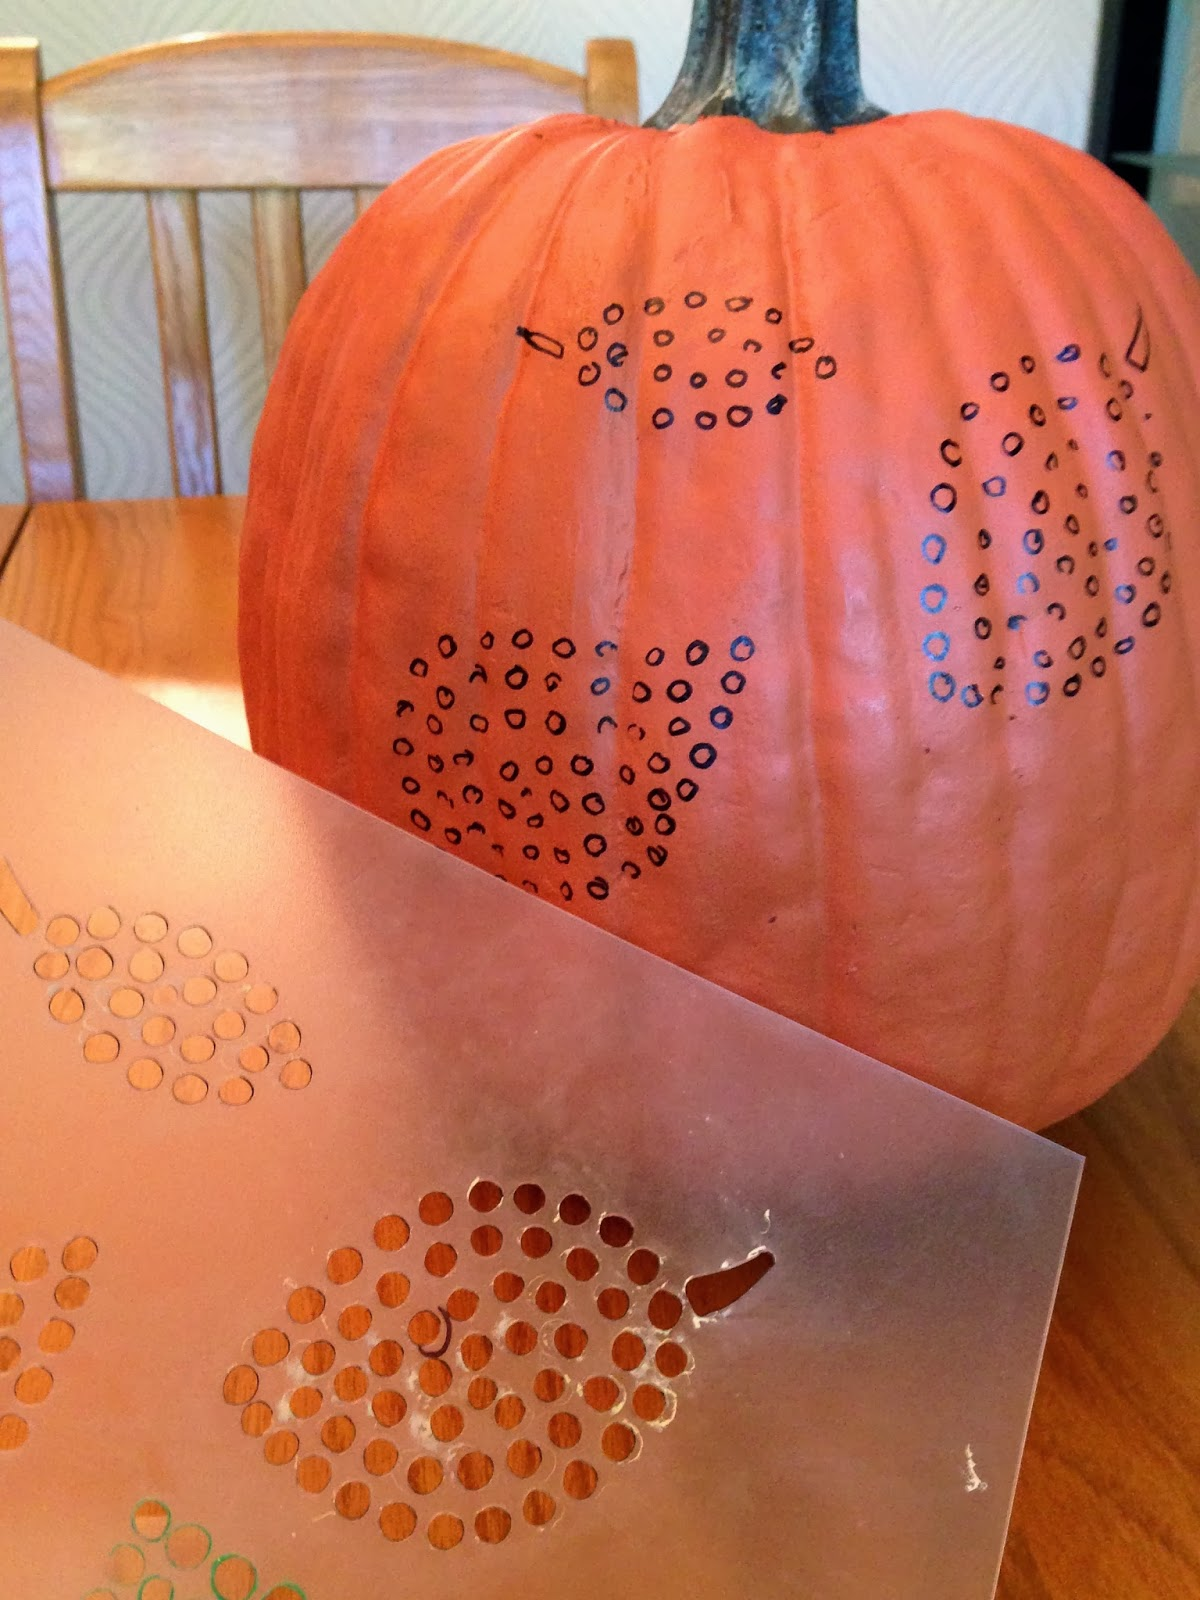 Decorella: carving pumpkins with power tools